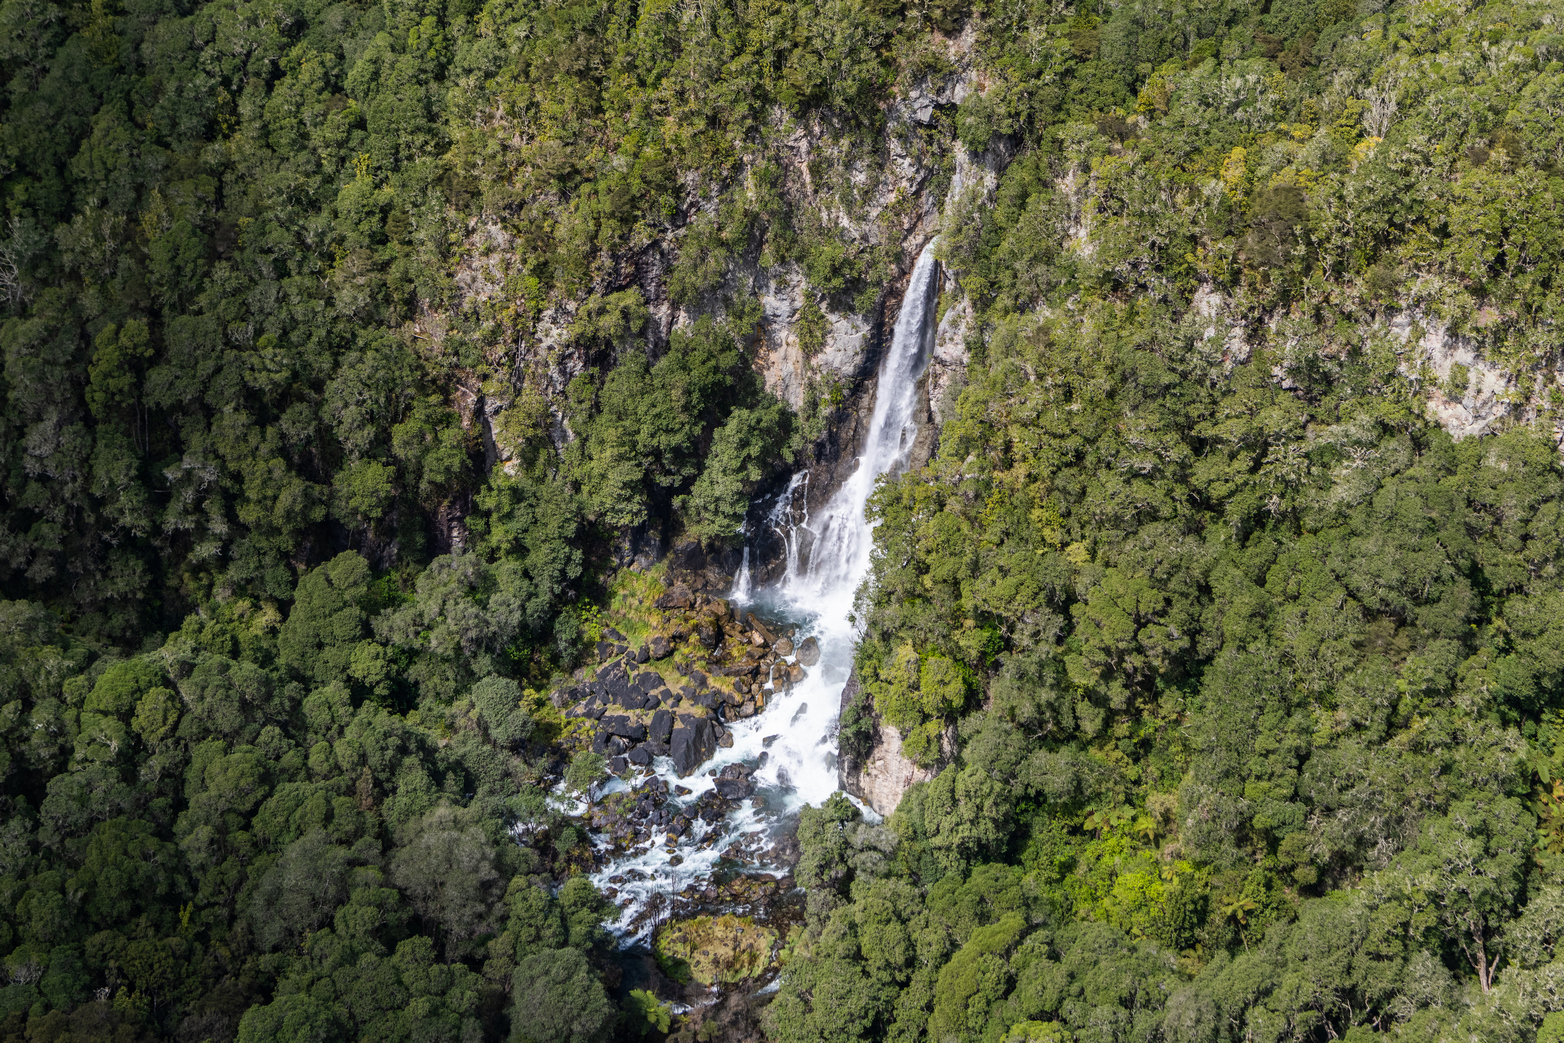 Flying over the Tarawera Falls